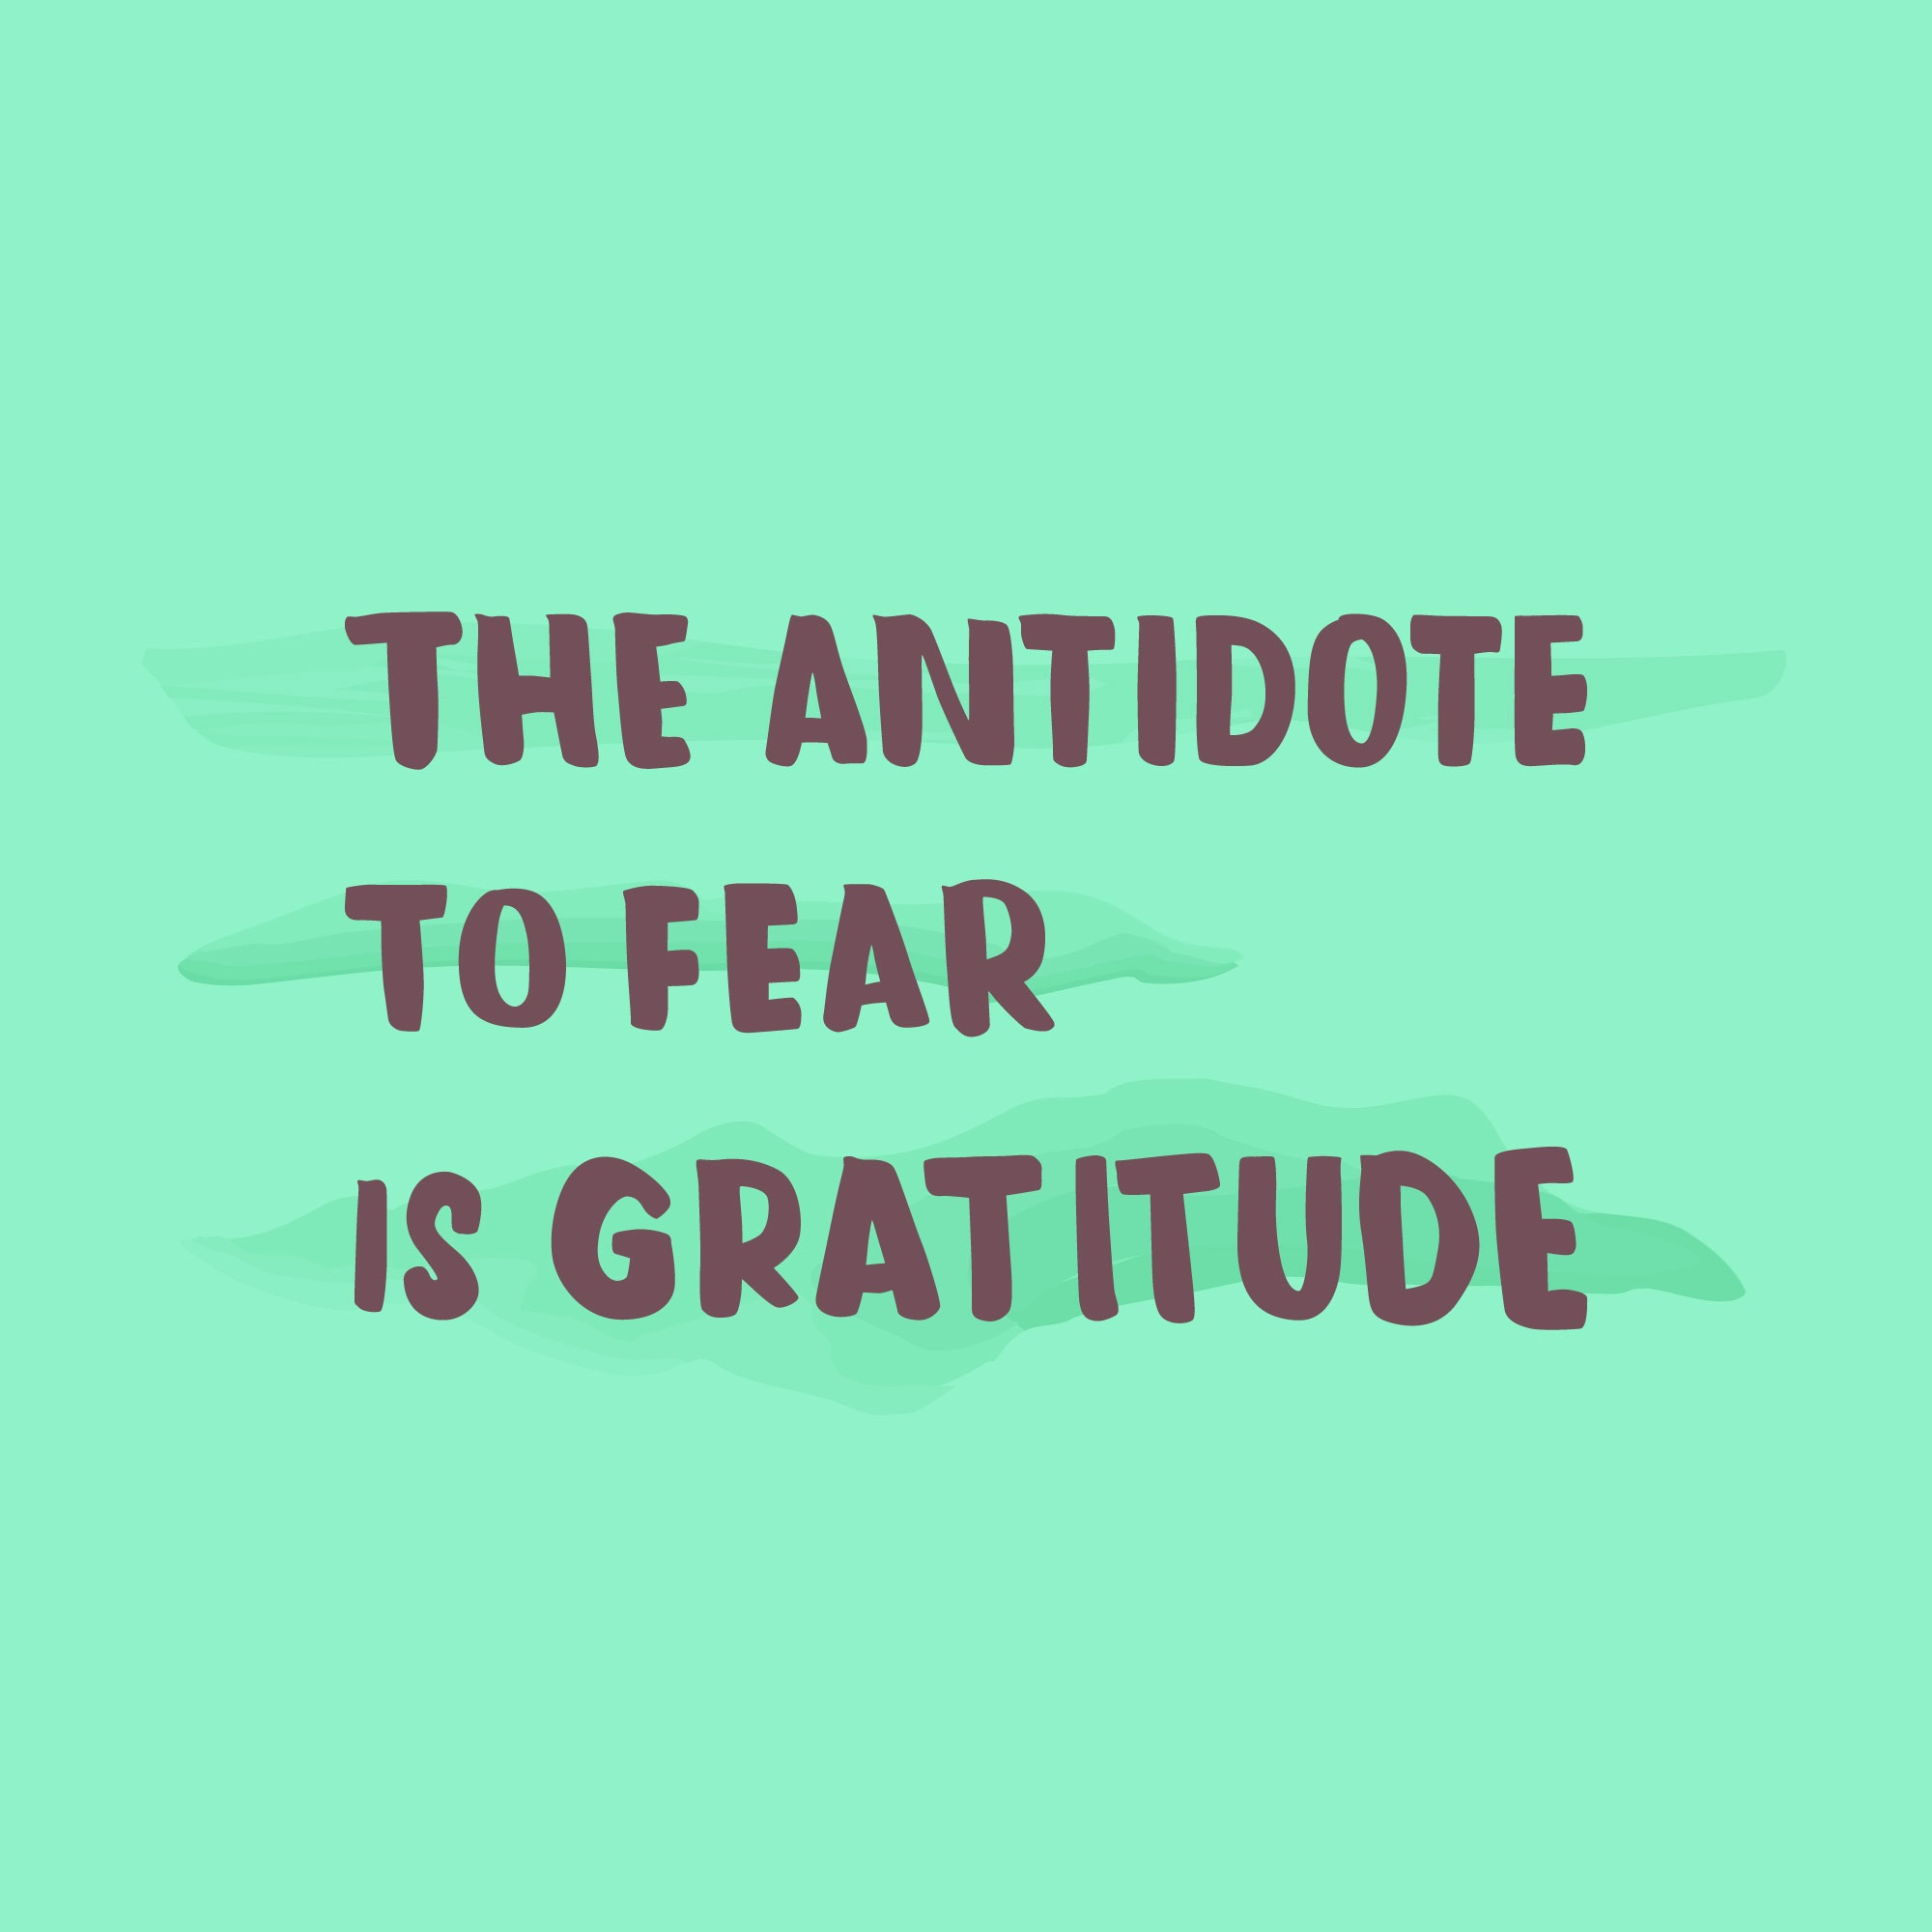 The antidote to fear is gratitude.